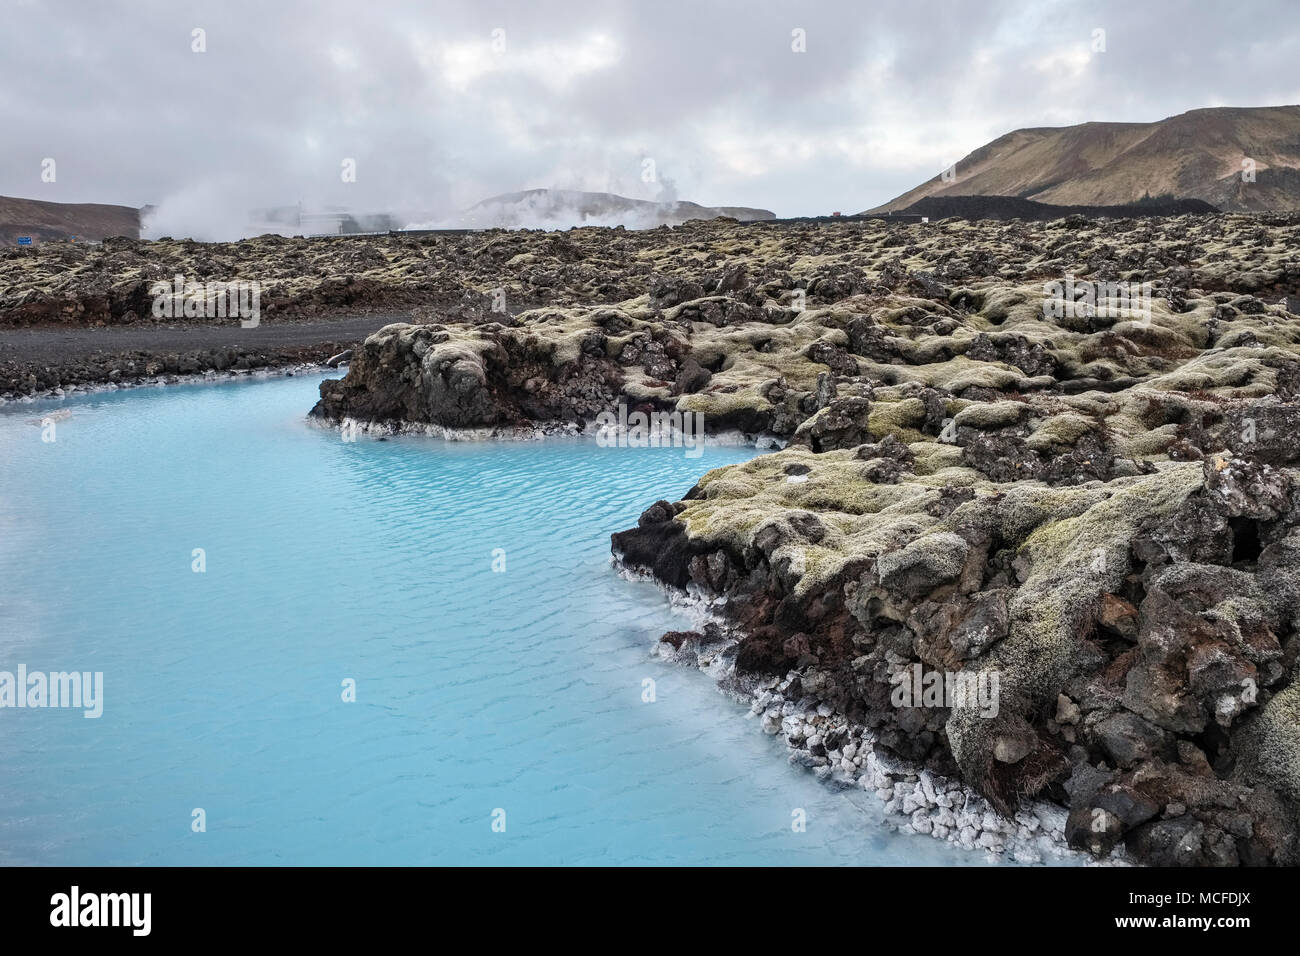 Grindavik, Reykjanes Peninsula, Iceland. Waste hot water from the Svartsengi geothermal power station, which also supplies the Blue Lagoon spa nearby - Stock Image